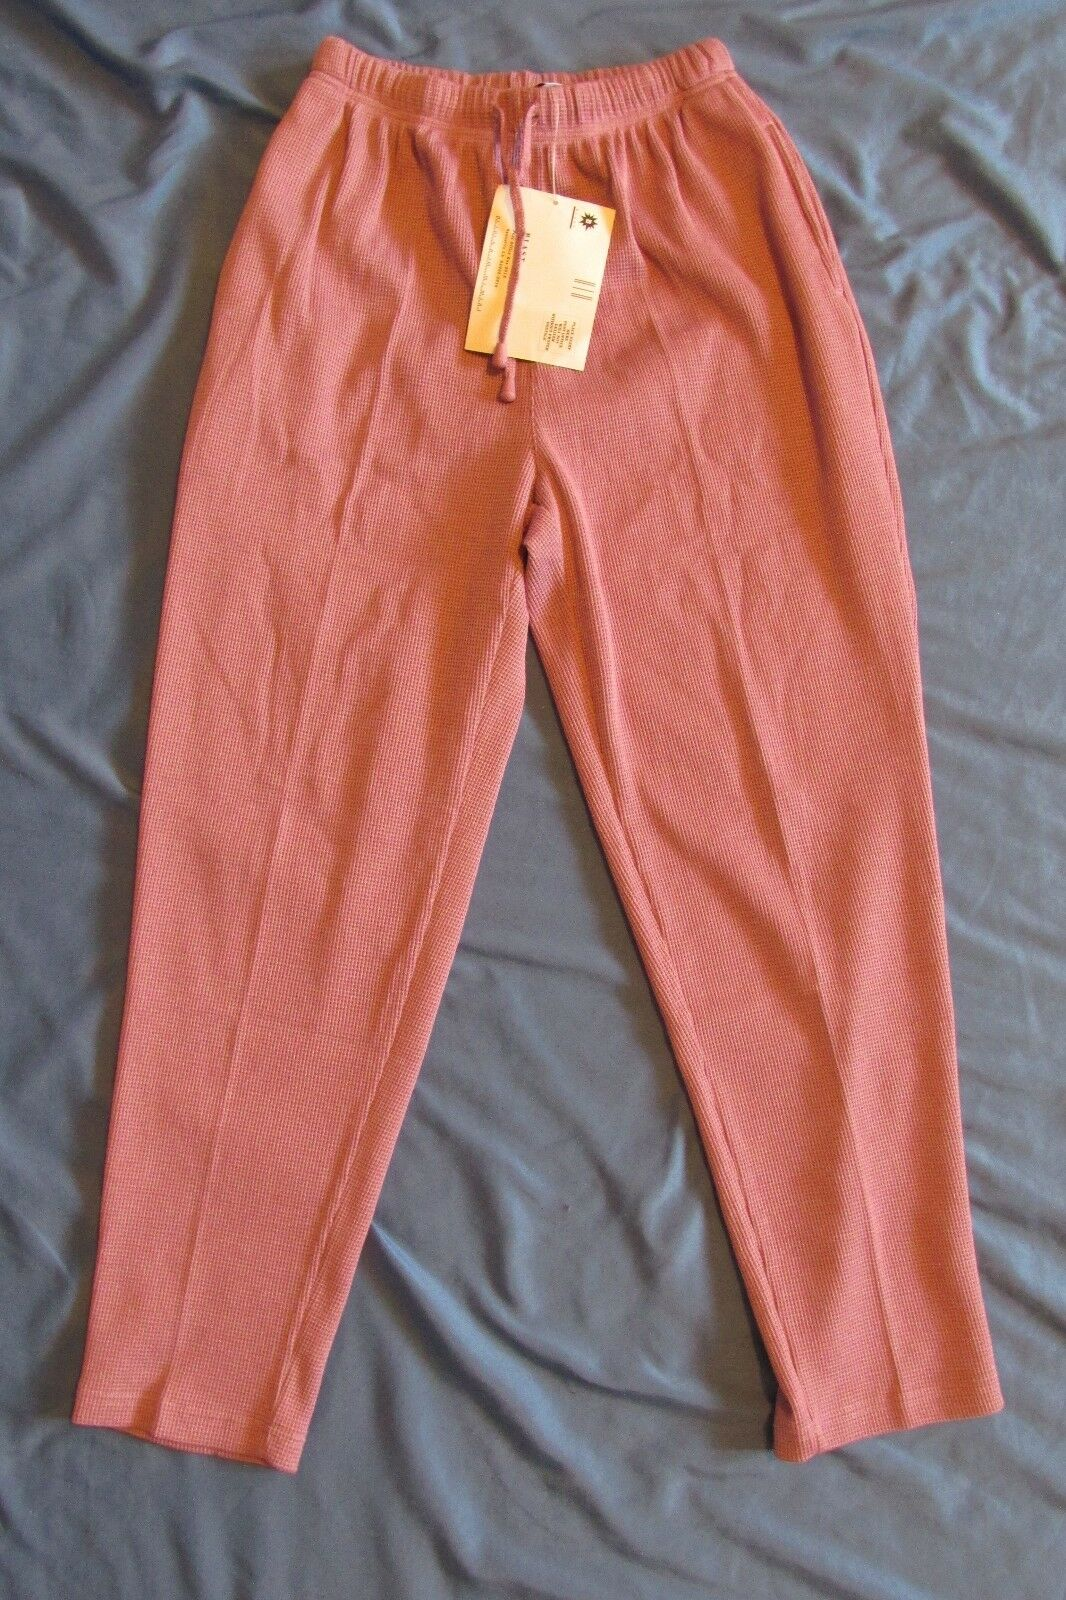 New Women's Blast Petites Lavandar Purple Thermal Casual Pants Petite Medium PM